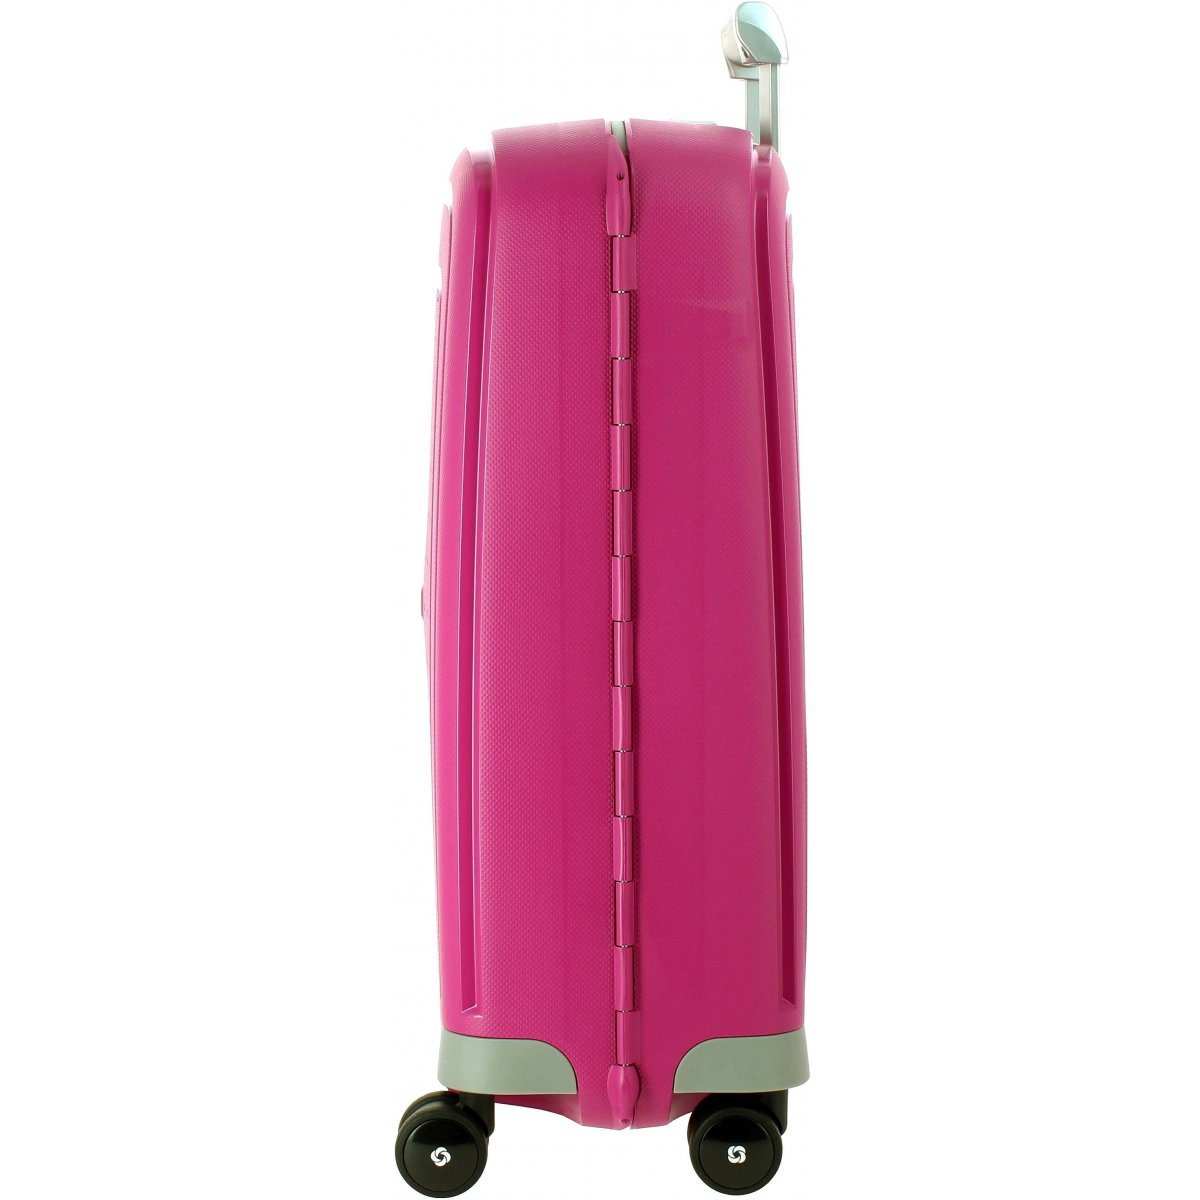 valise cabine samsonite s 39 cure spinner 55cm scure39 couleur principale fushia solde. Black Bedroom Furniture Sets. Home Design Ideas